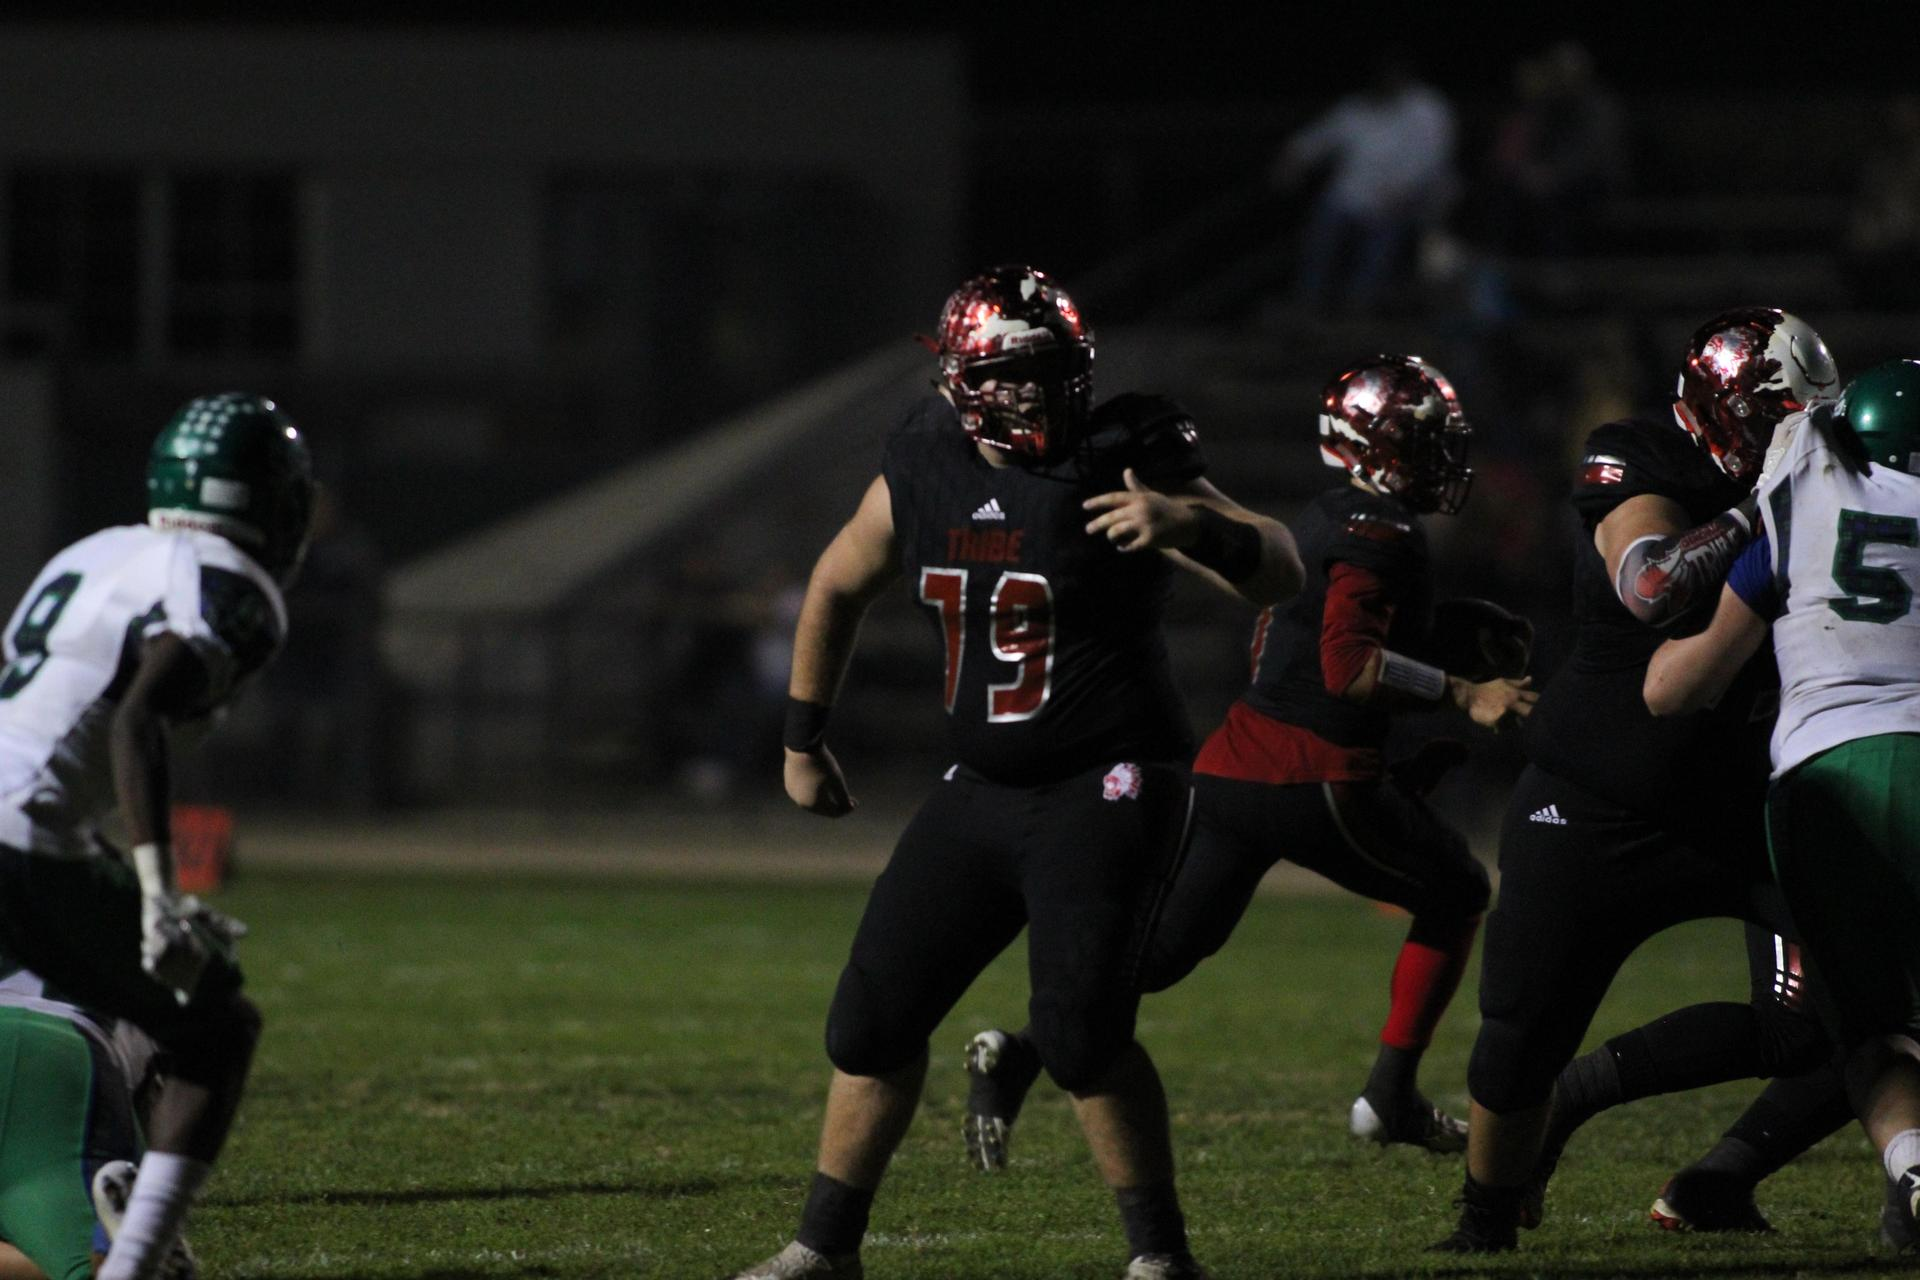 Football players in action against Highland